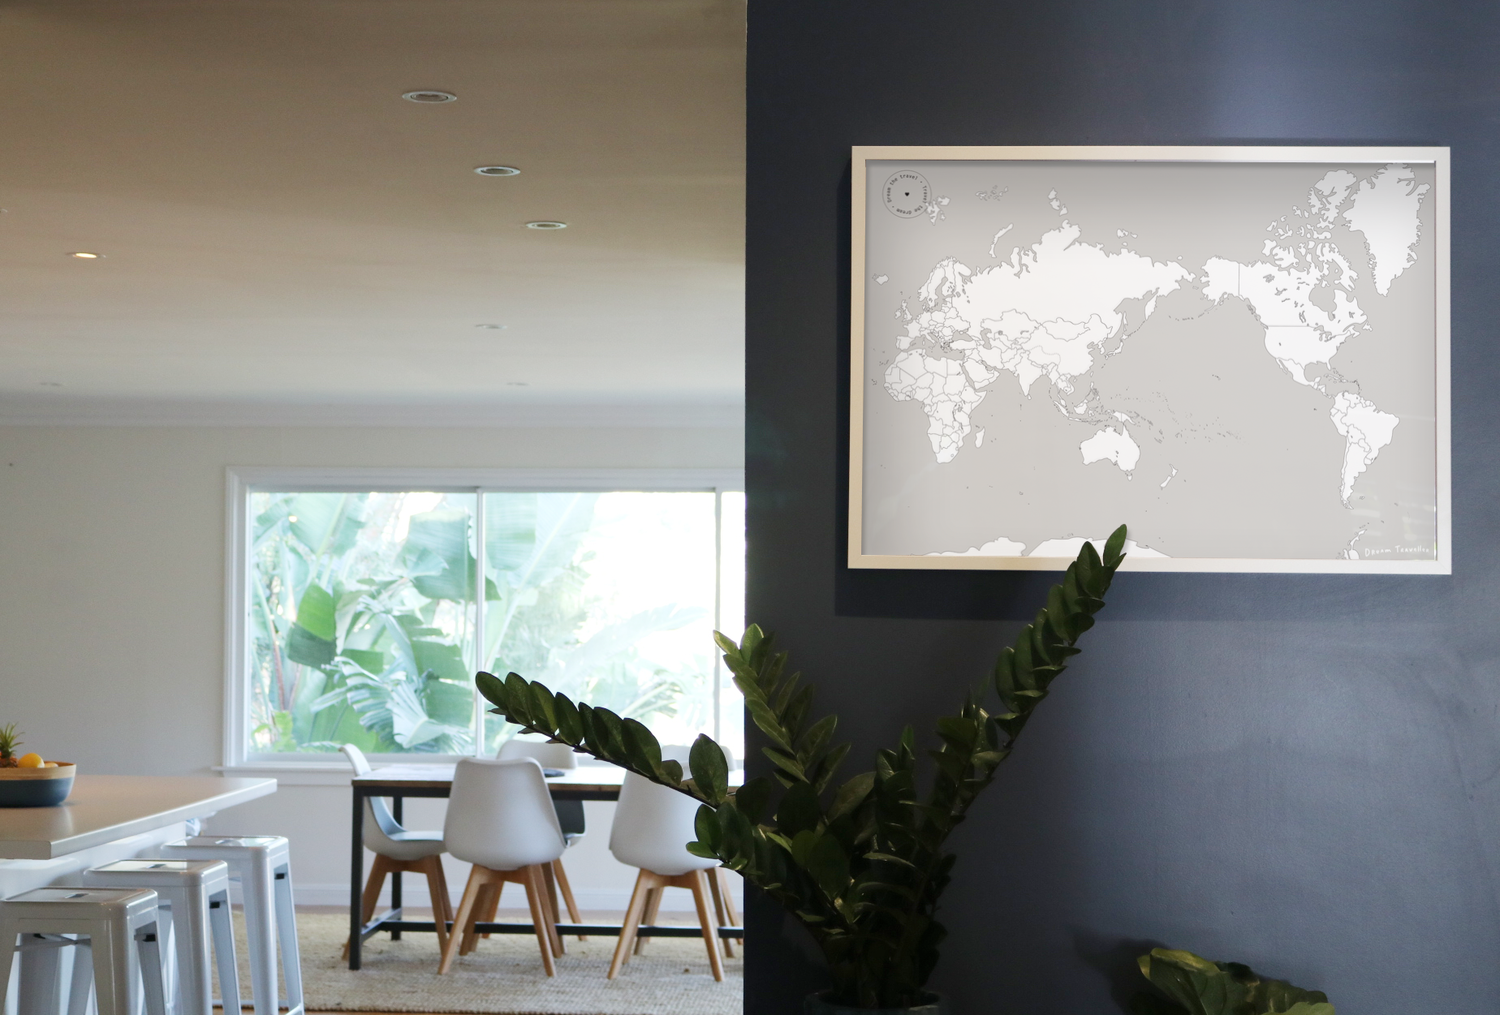 1B. Medium World - A1 size (841 x 549mm)–SPECIAL PRICE: Base map reduced from $120 to $100